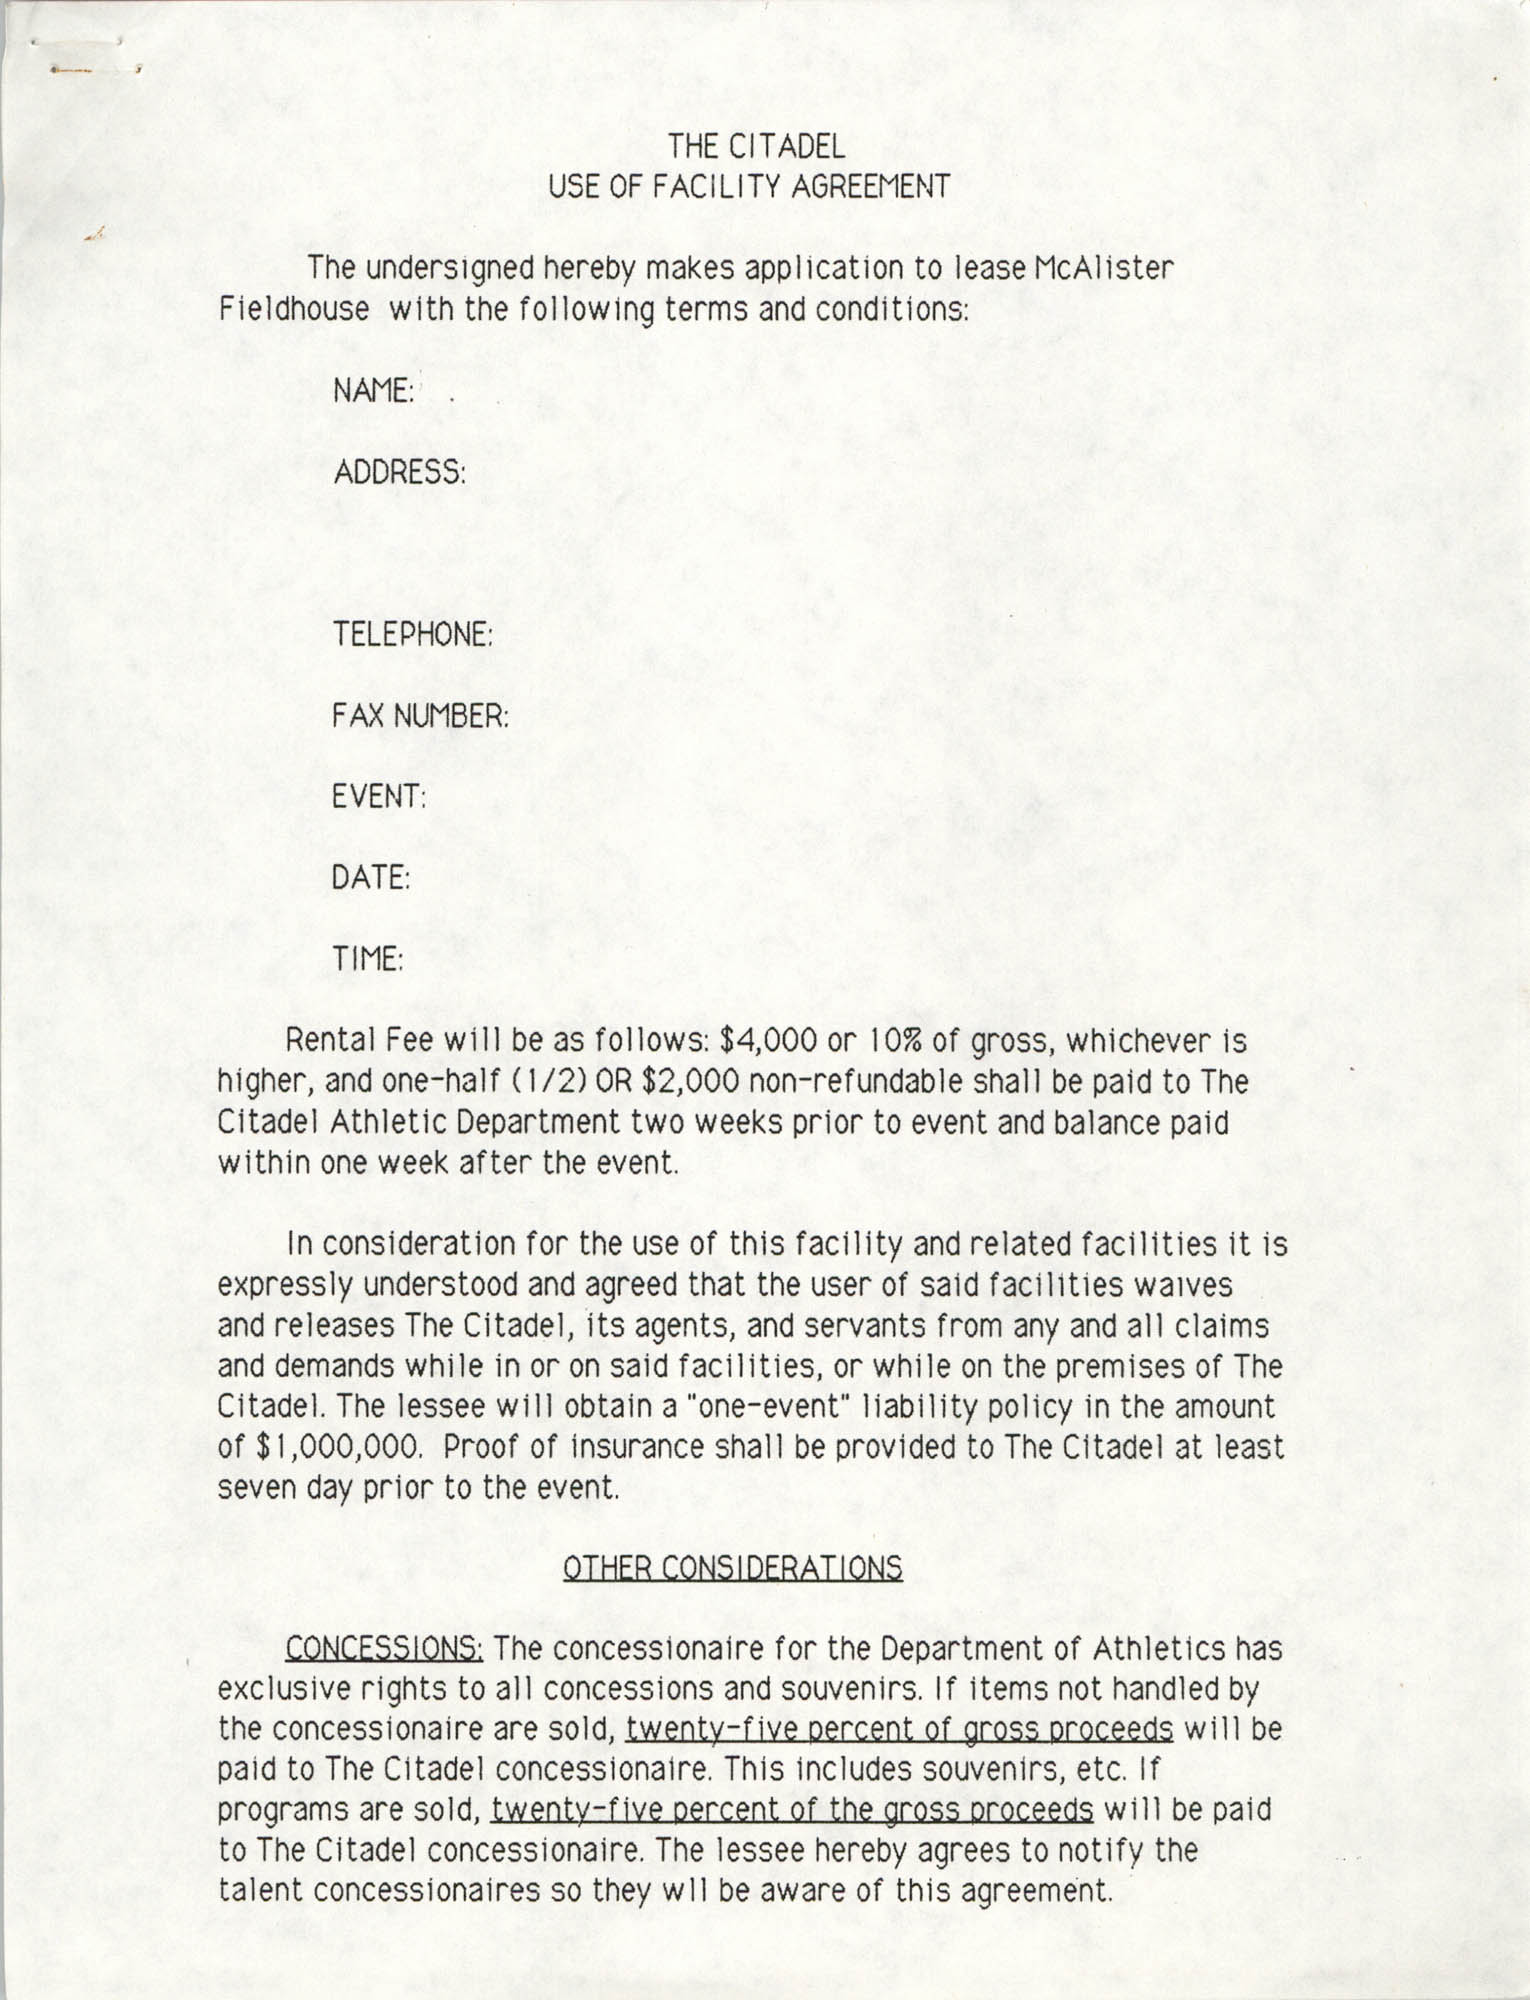 The Citadel Use of Facility Agreement, Page 1